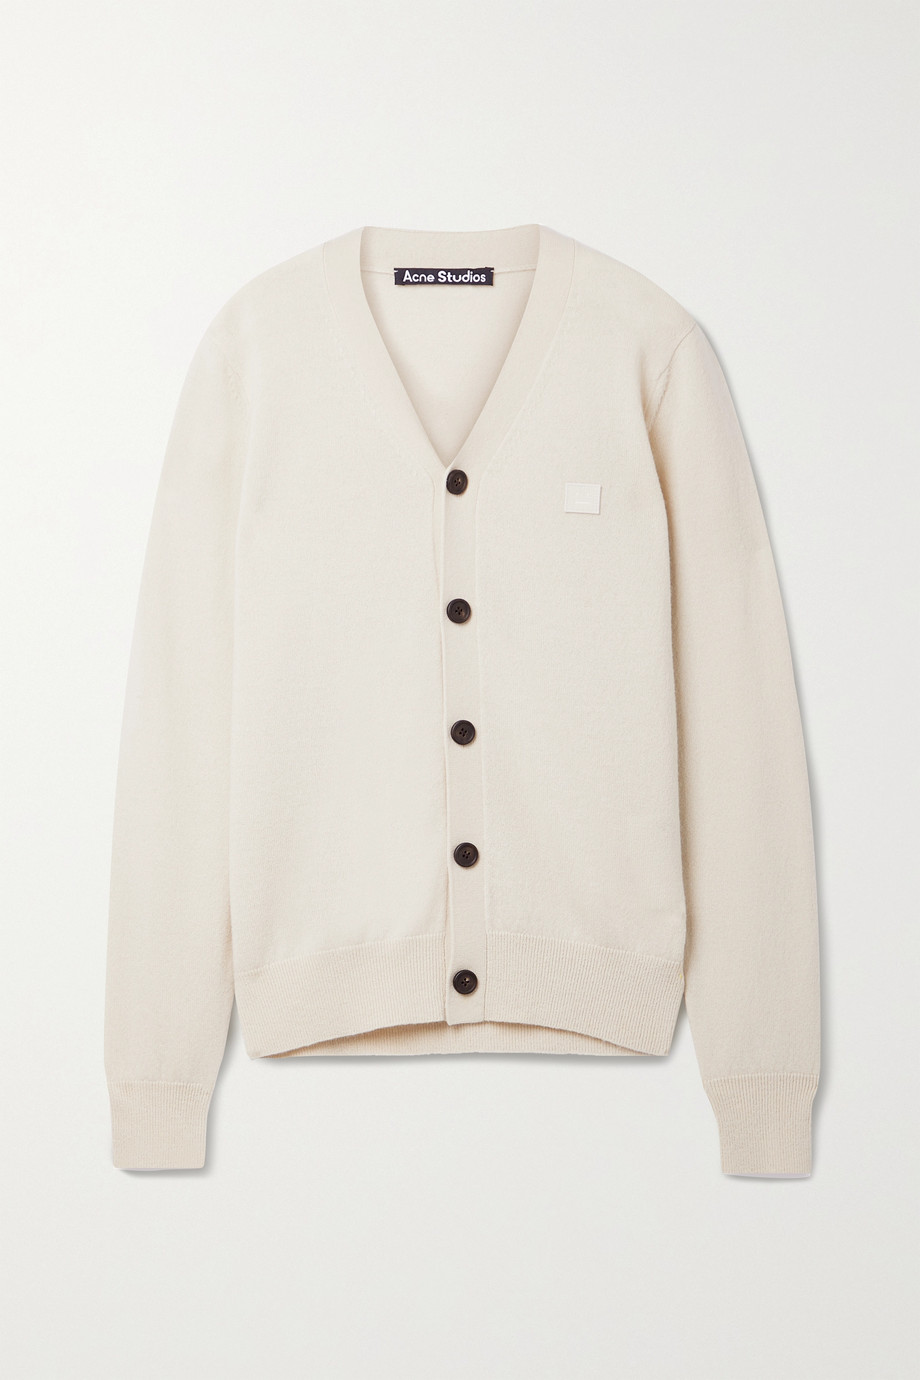 Acne Studios + NET SUSTAIN appliquéd wool cardigan